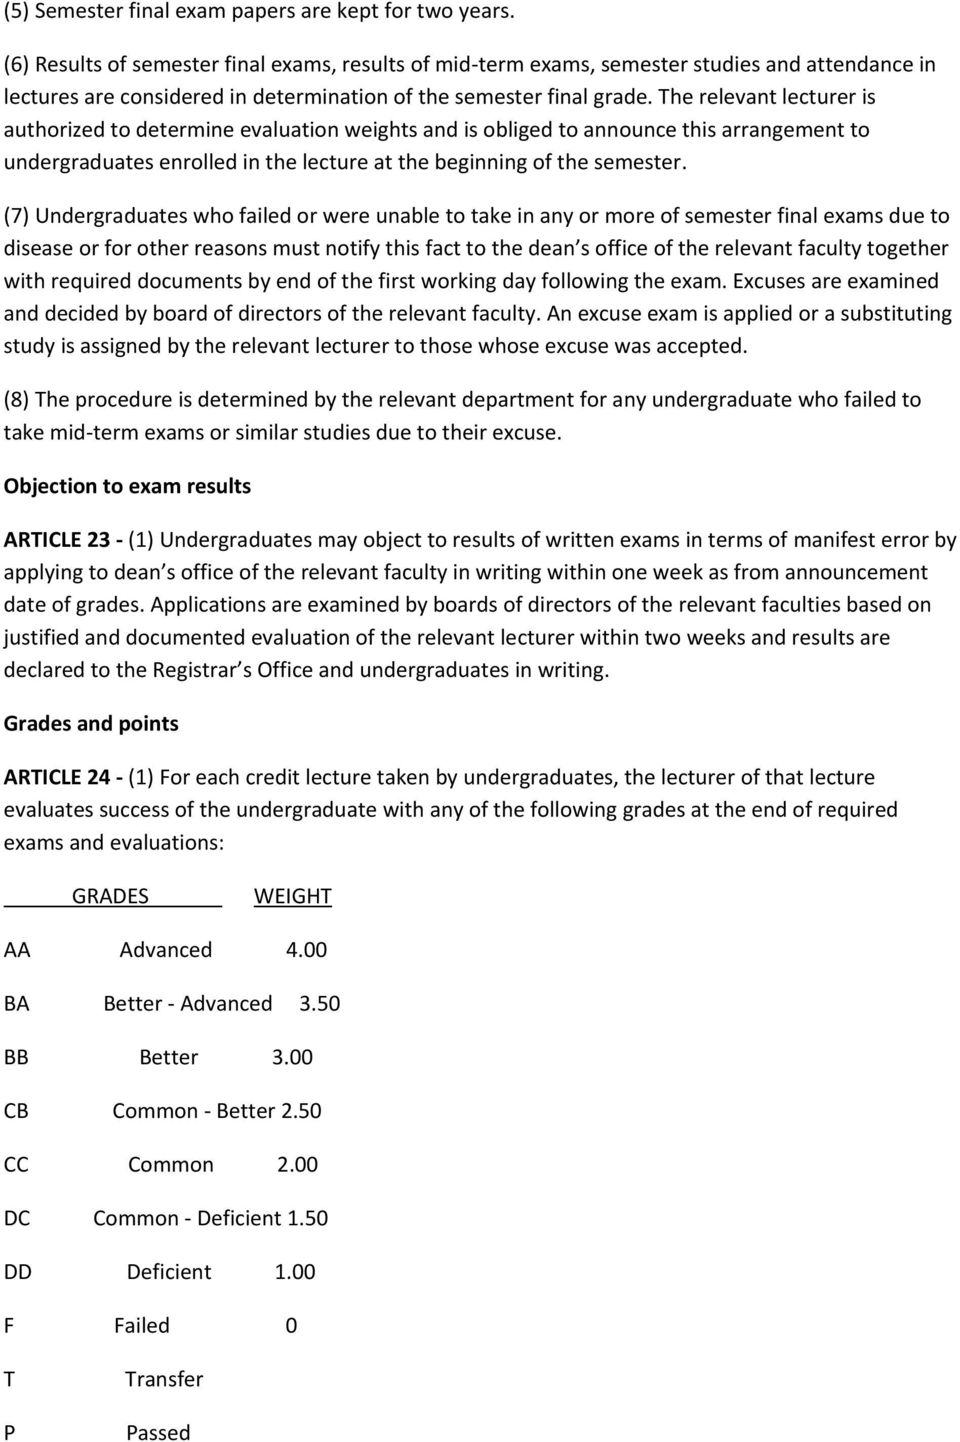 The relevant lecturer is authorized to determine evaluation weights and is obliged to announce this arrangement to undergraduates enrolled in the lecture at the beginning of the semester.